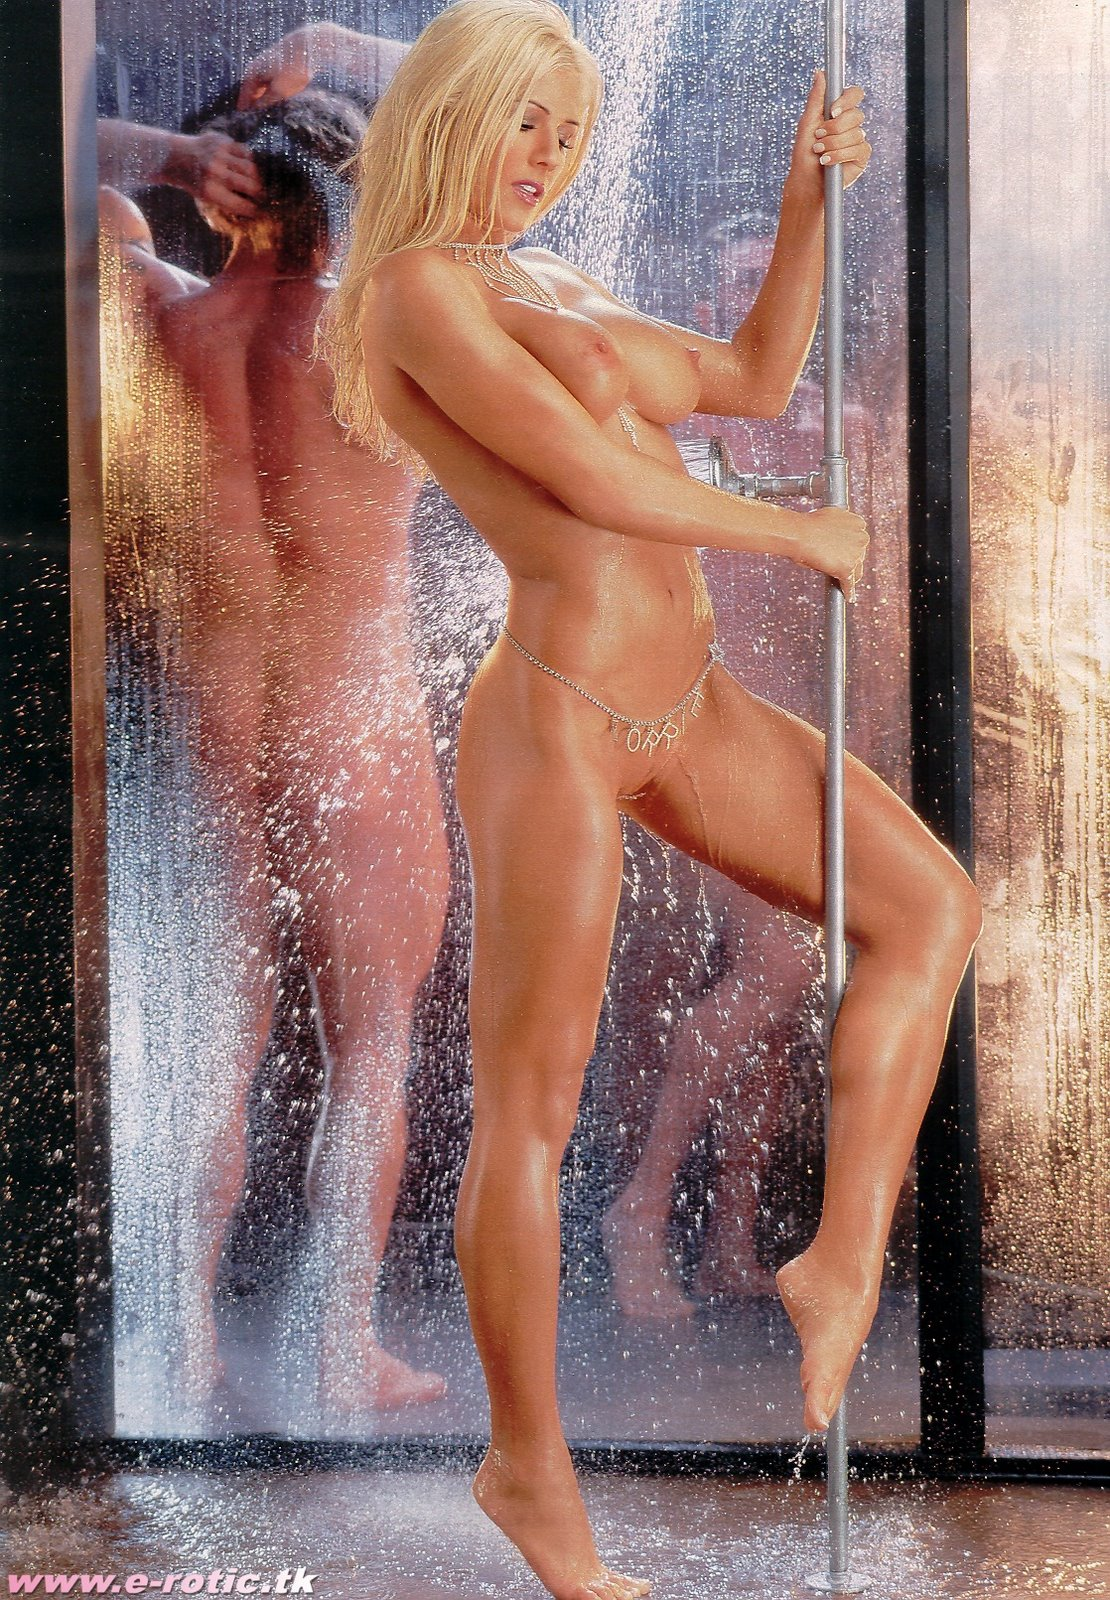 Torrie wilson playboy video nude